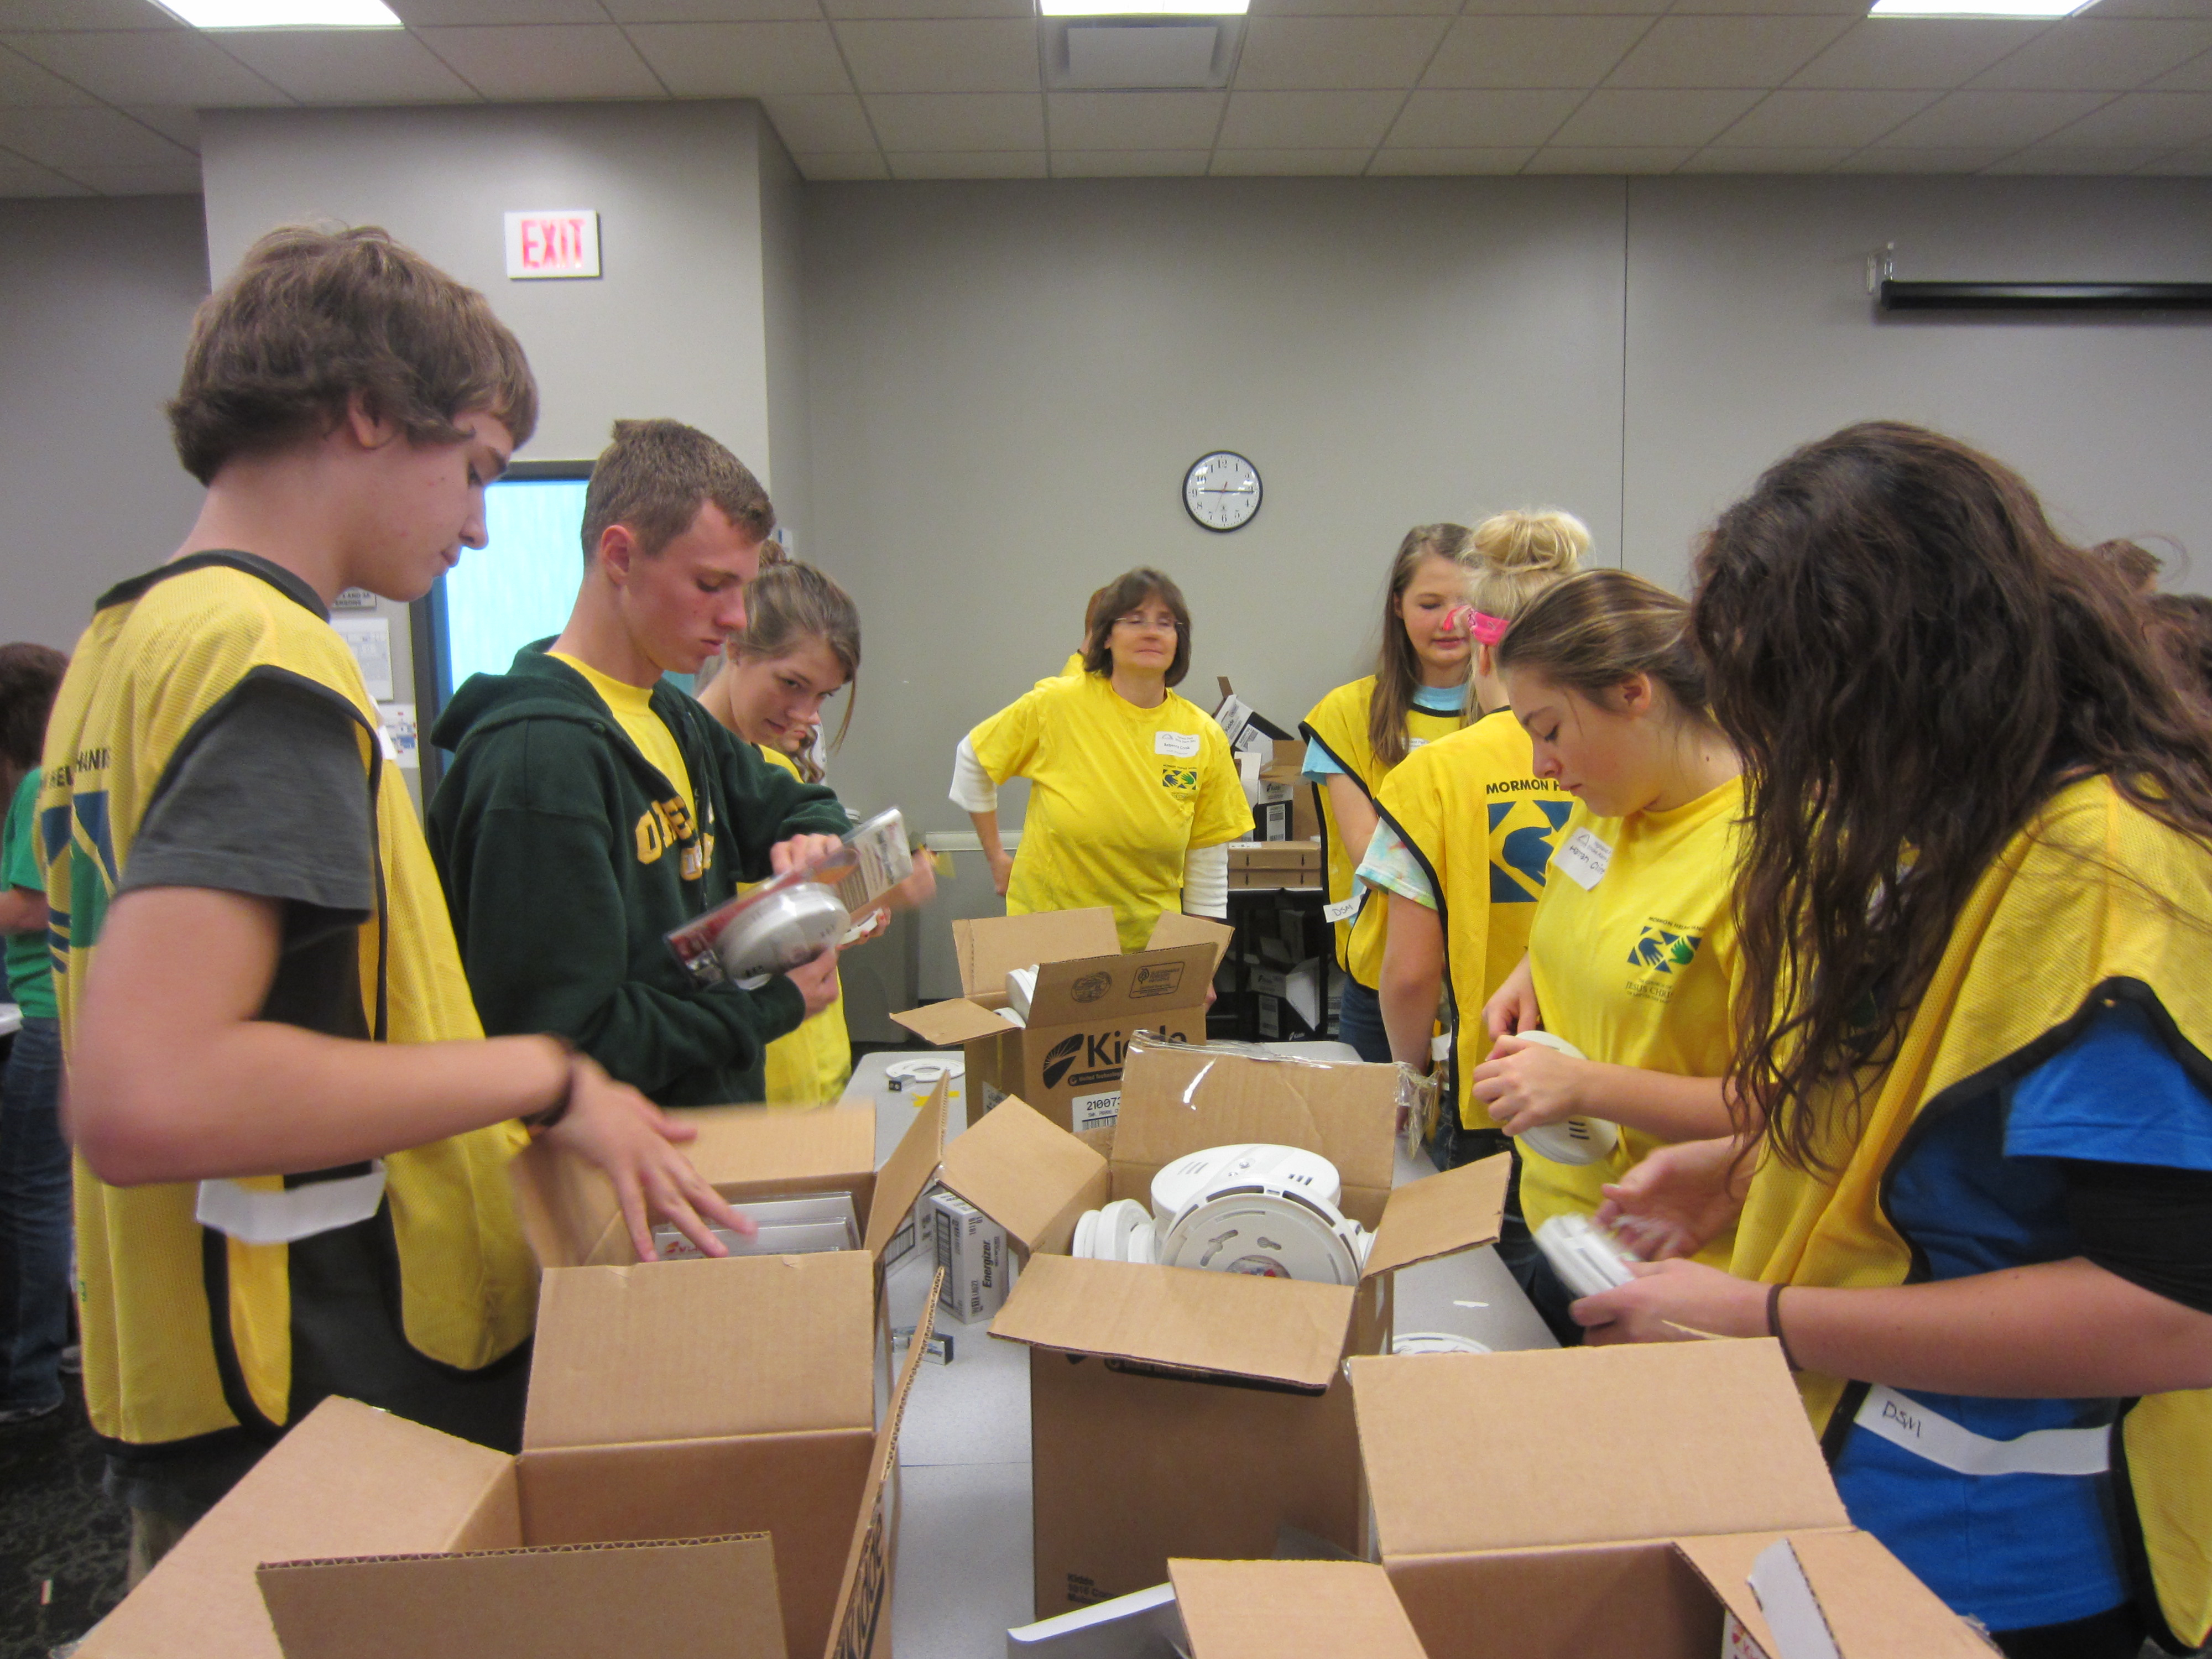 Youth serving Red Cross